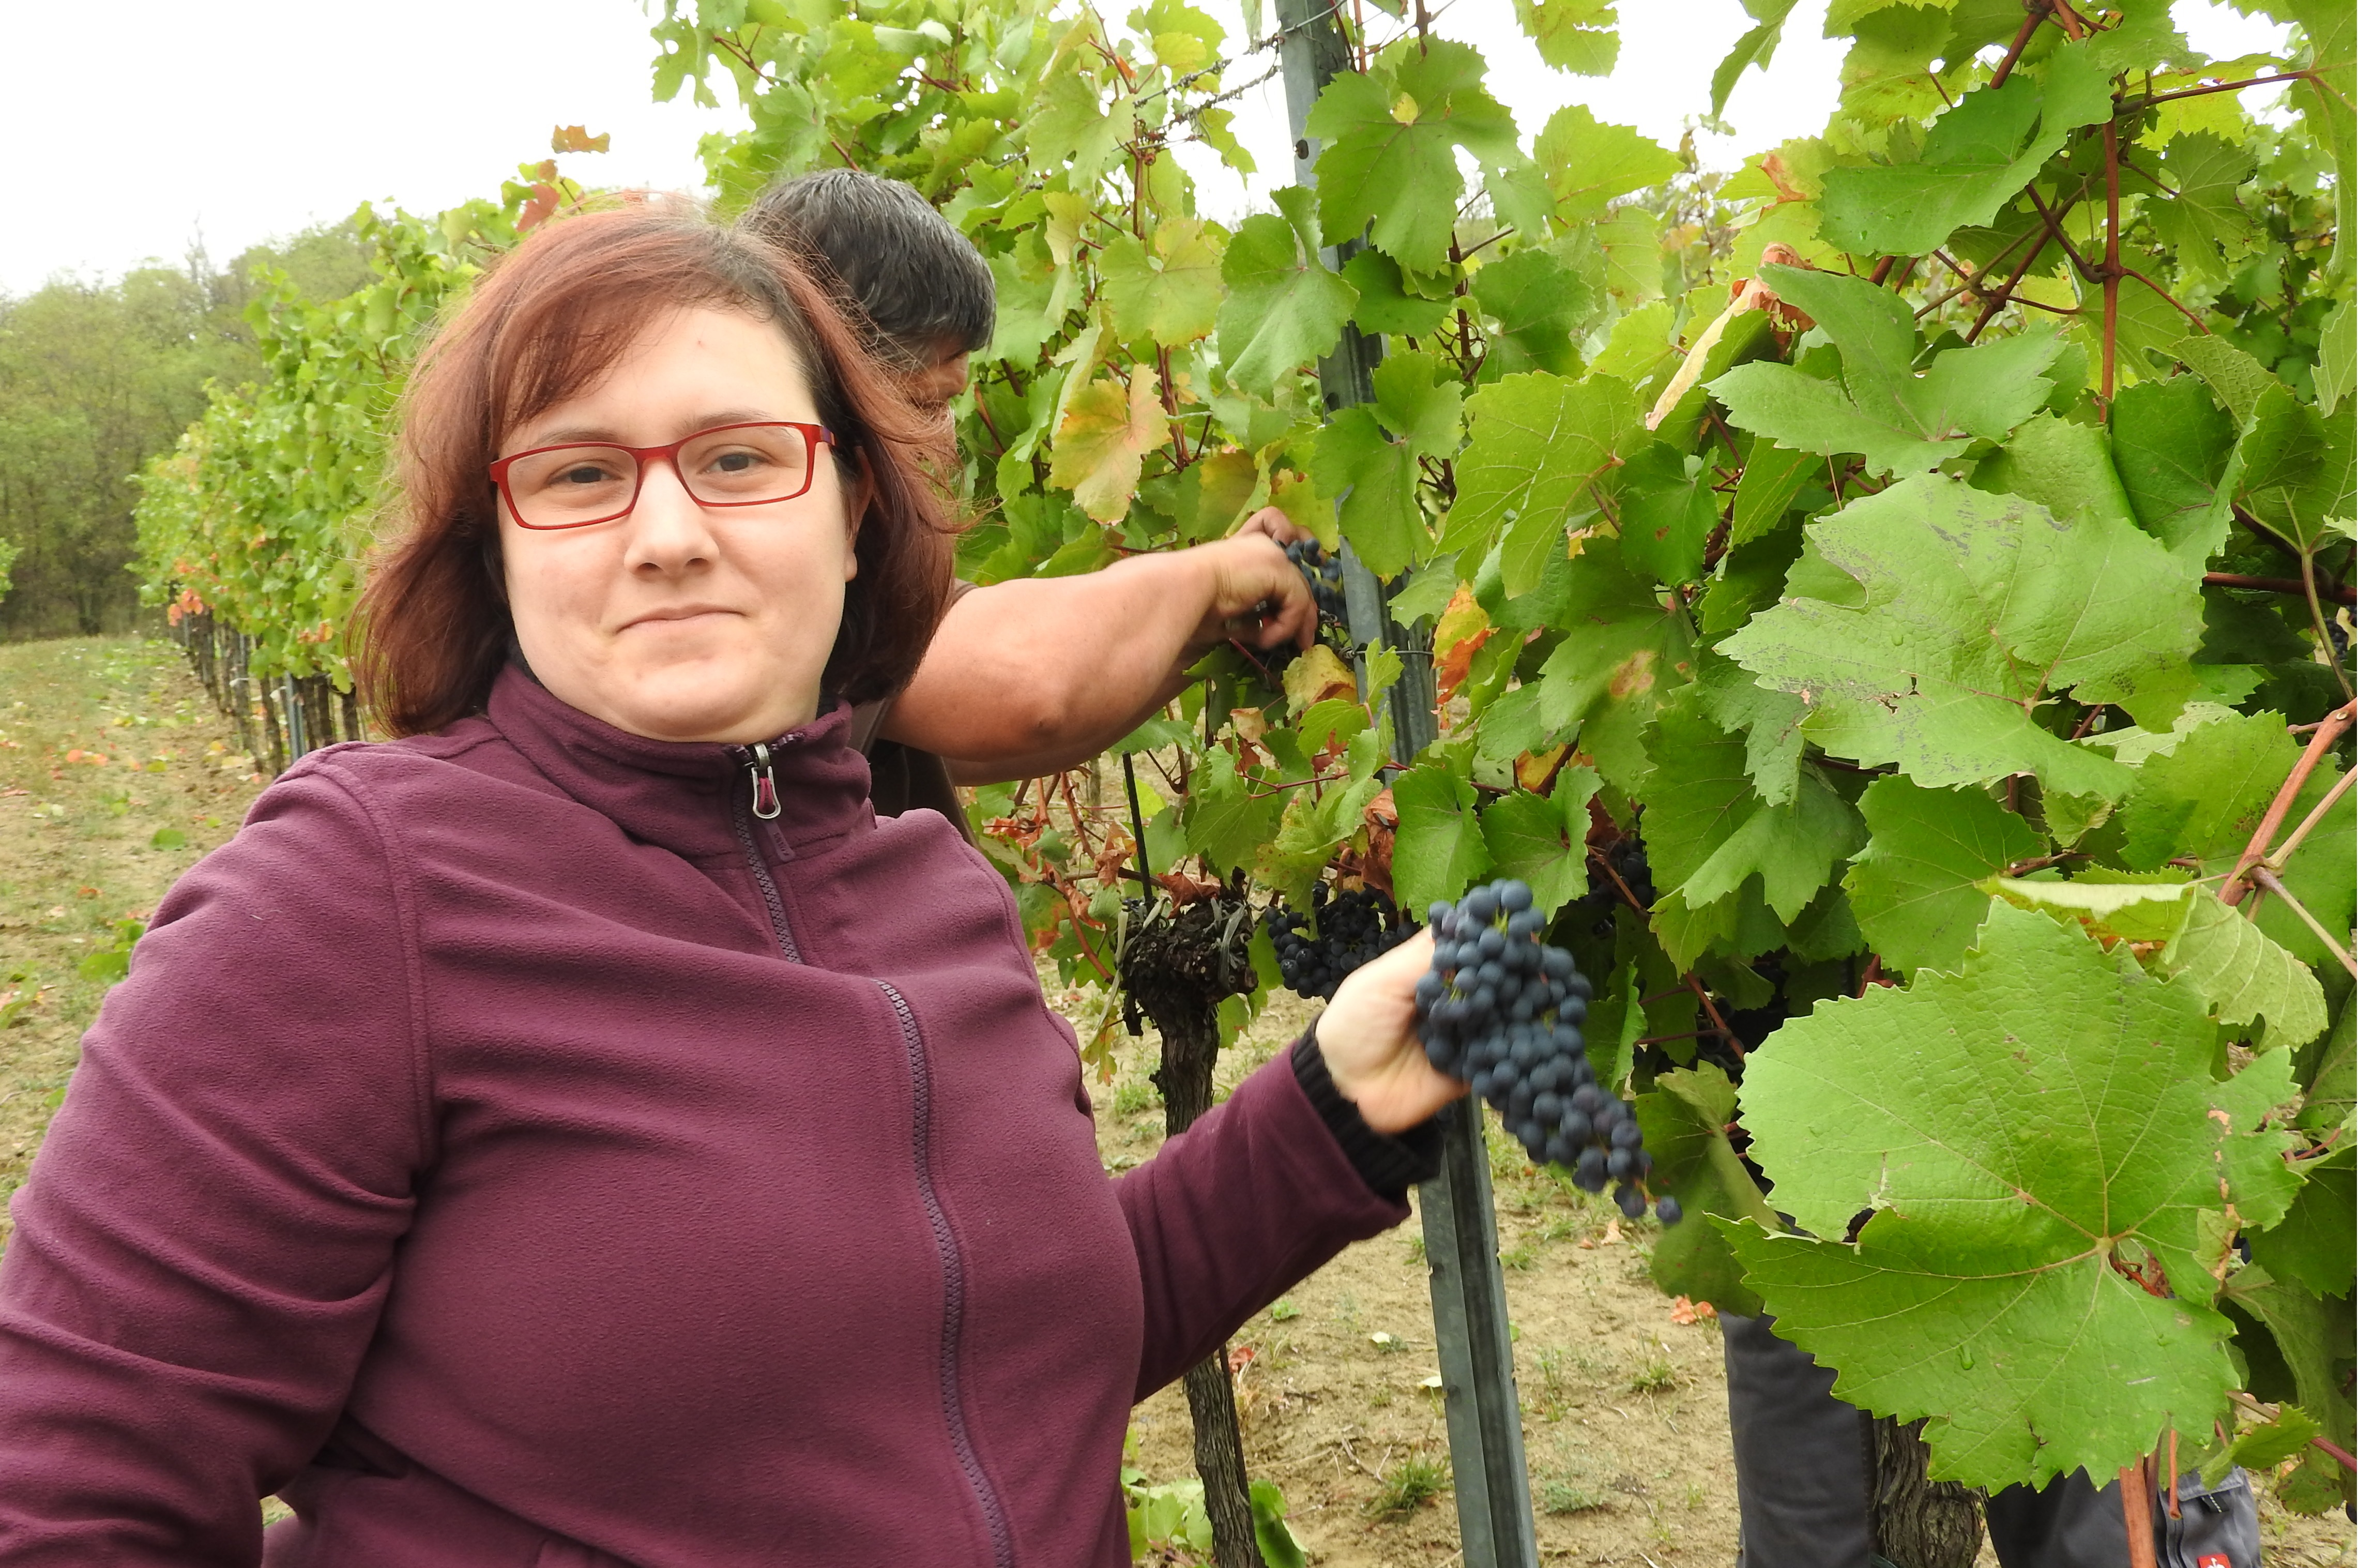 Marlene at the grape harvest 2017